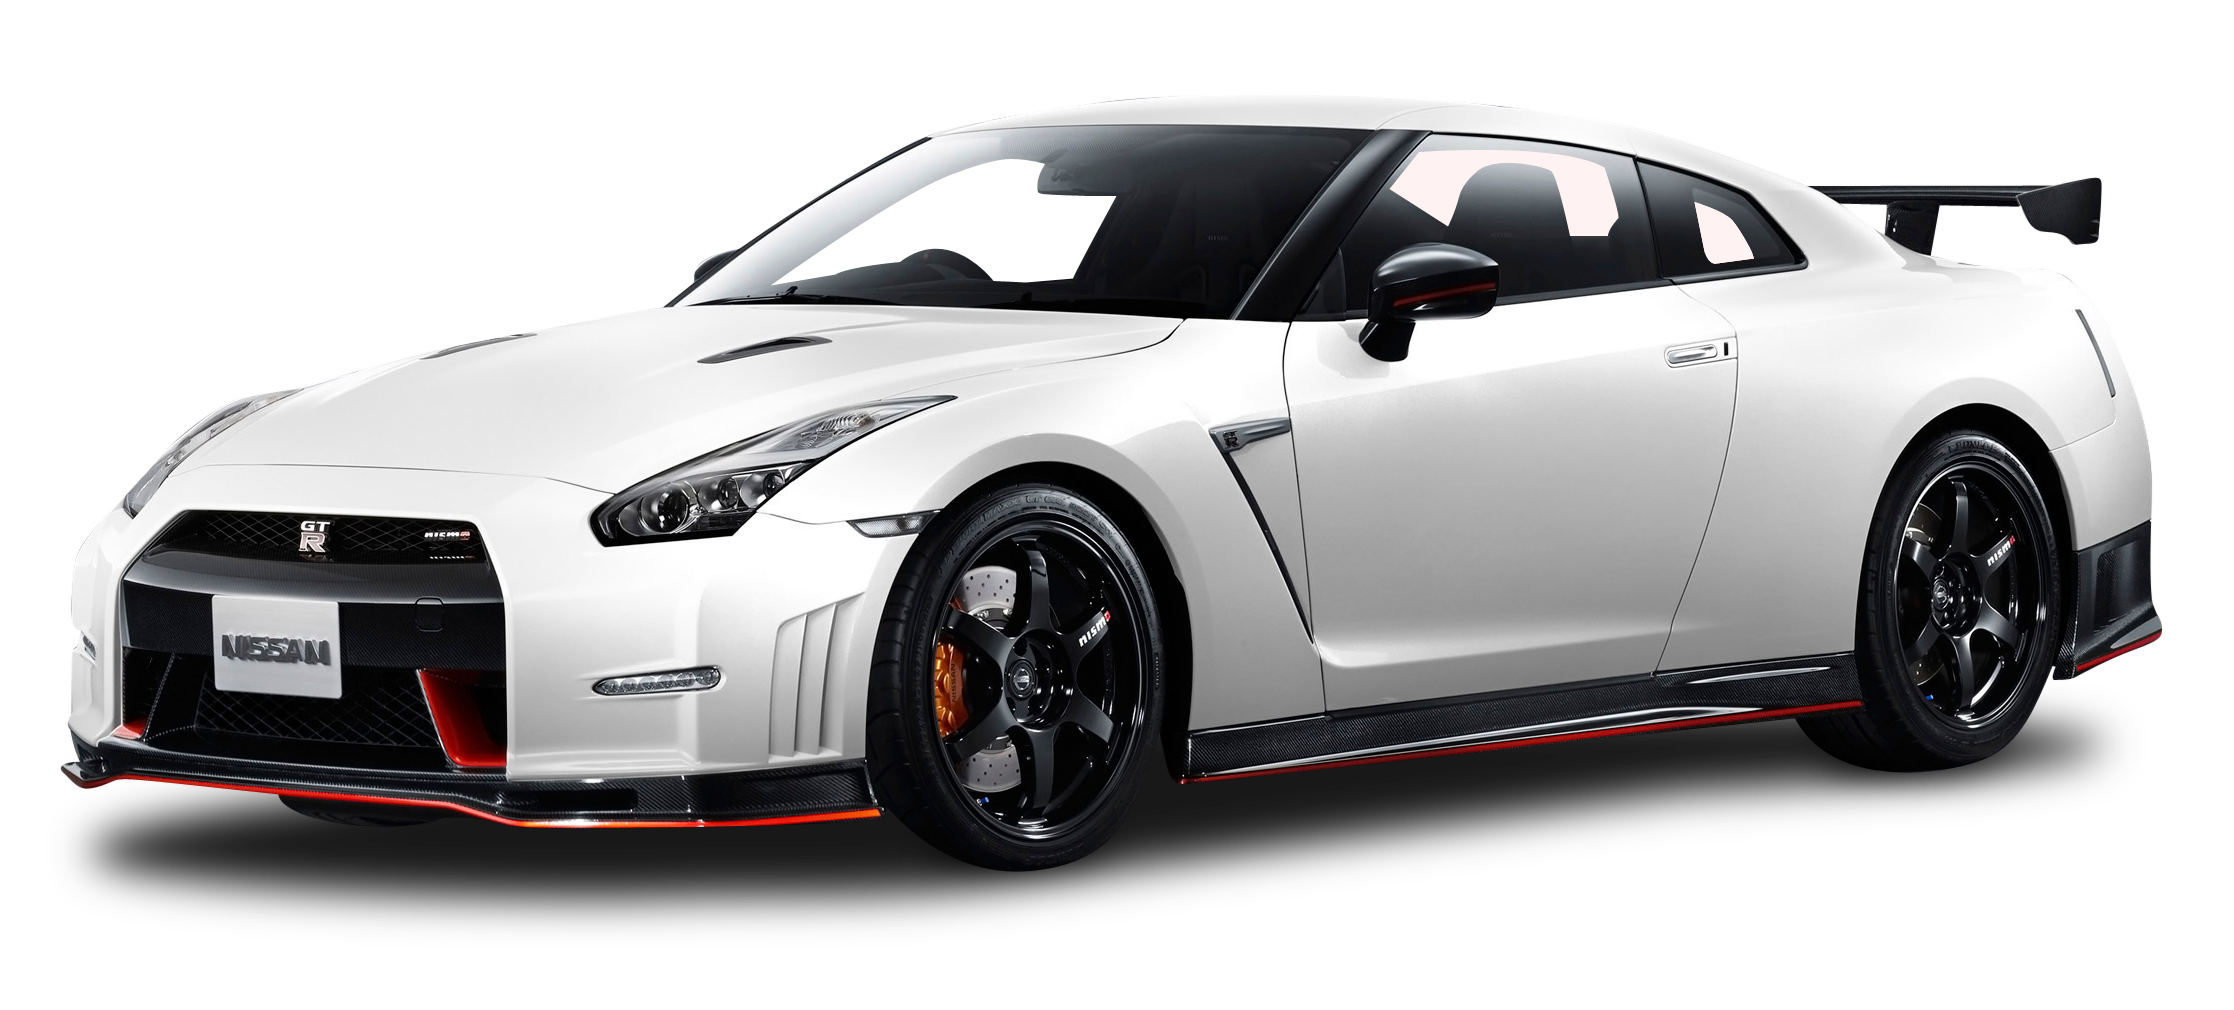 cars transparent gtr